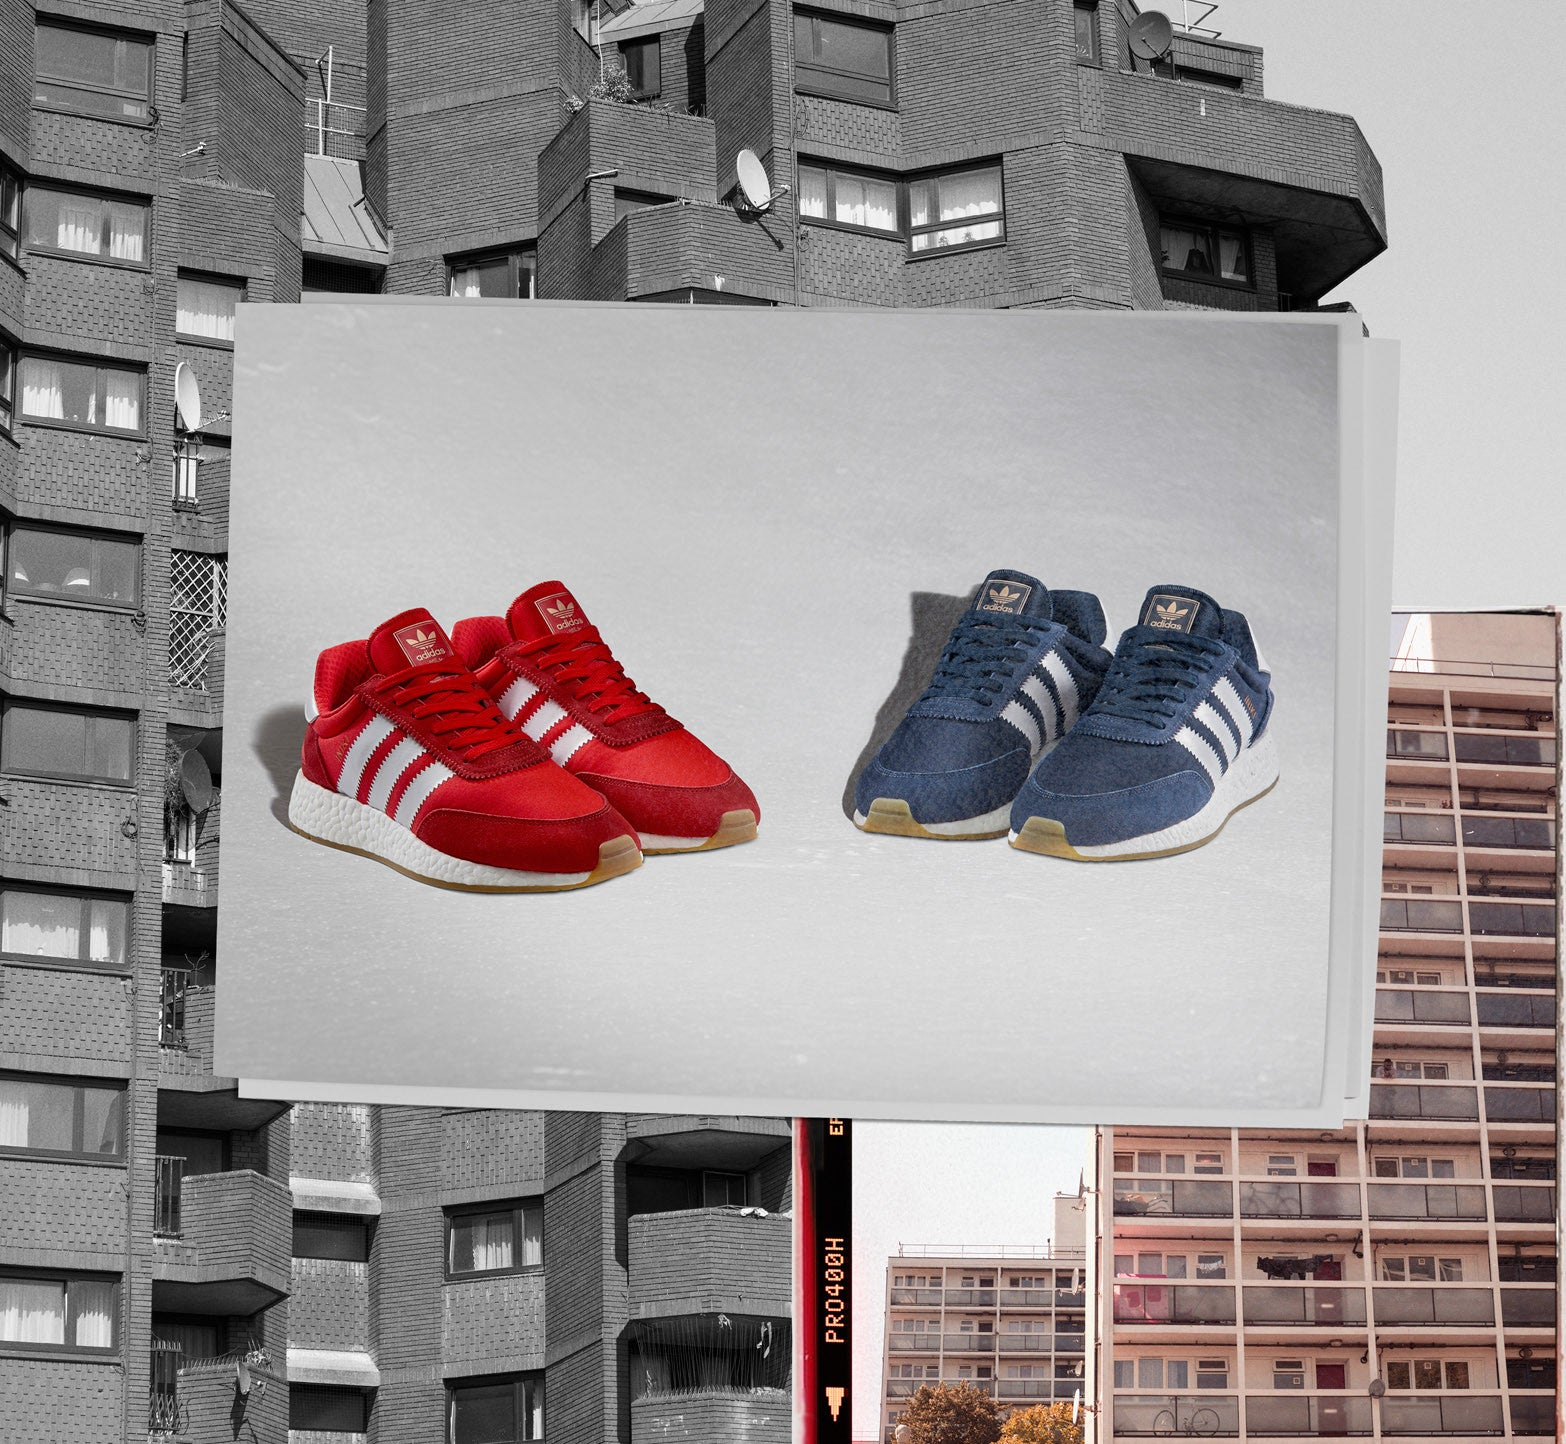 Introducing the Iniki Runner by adidas Originals